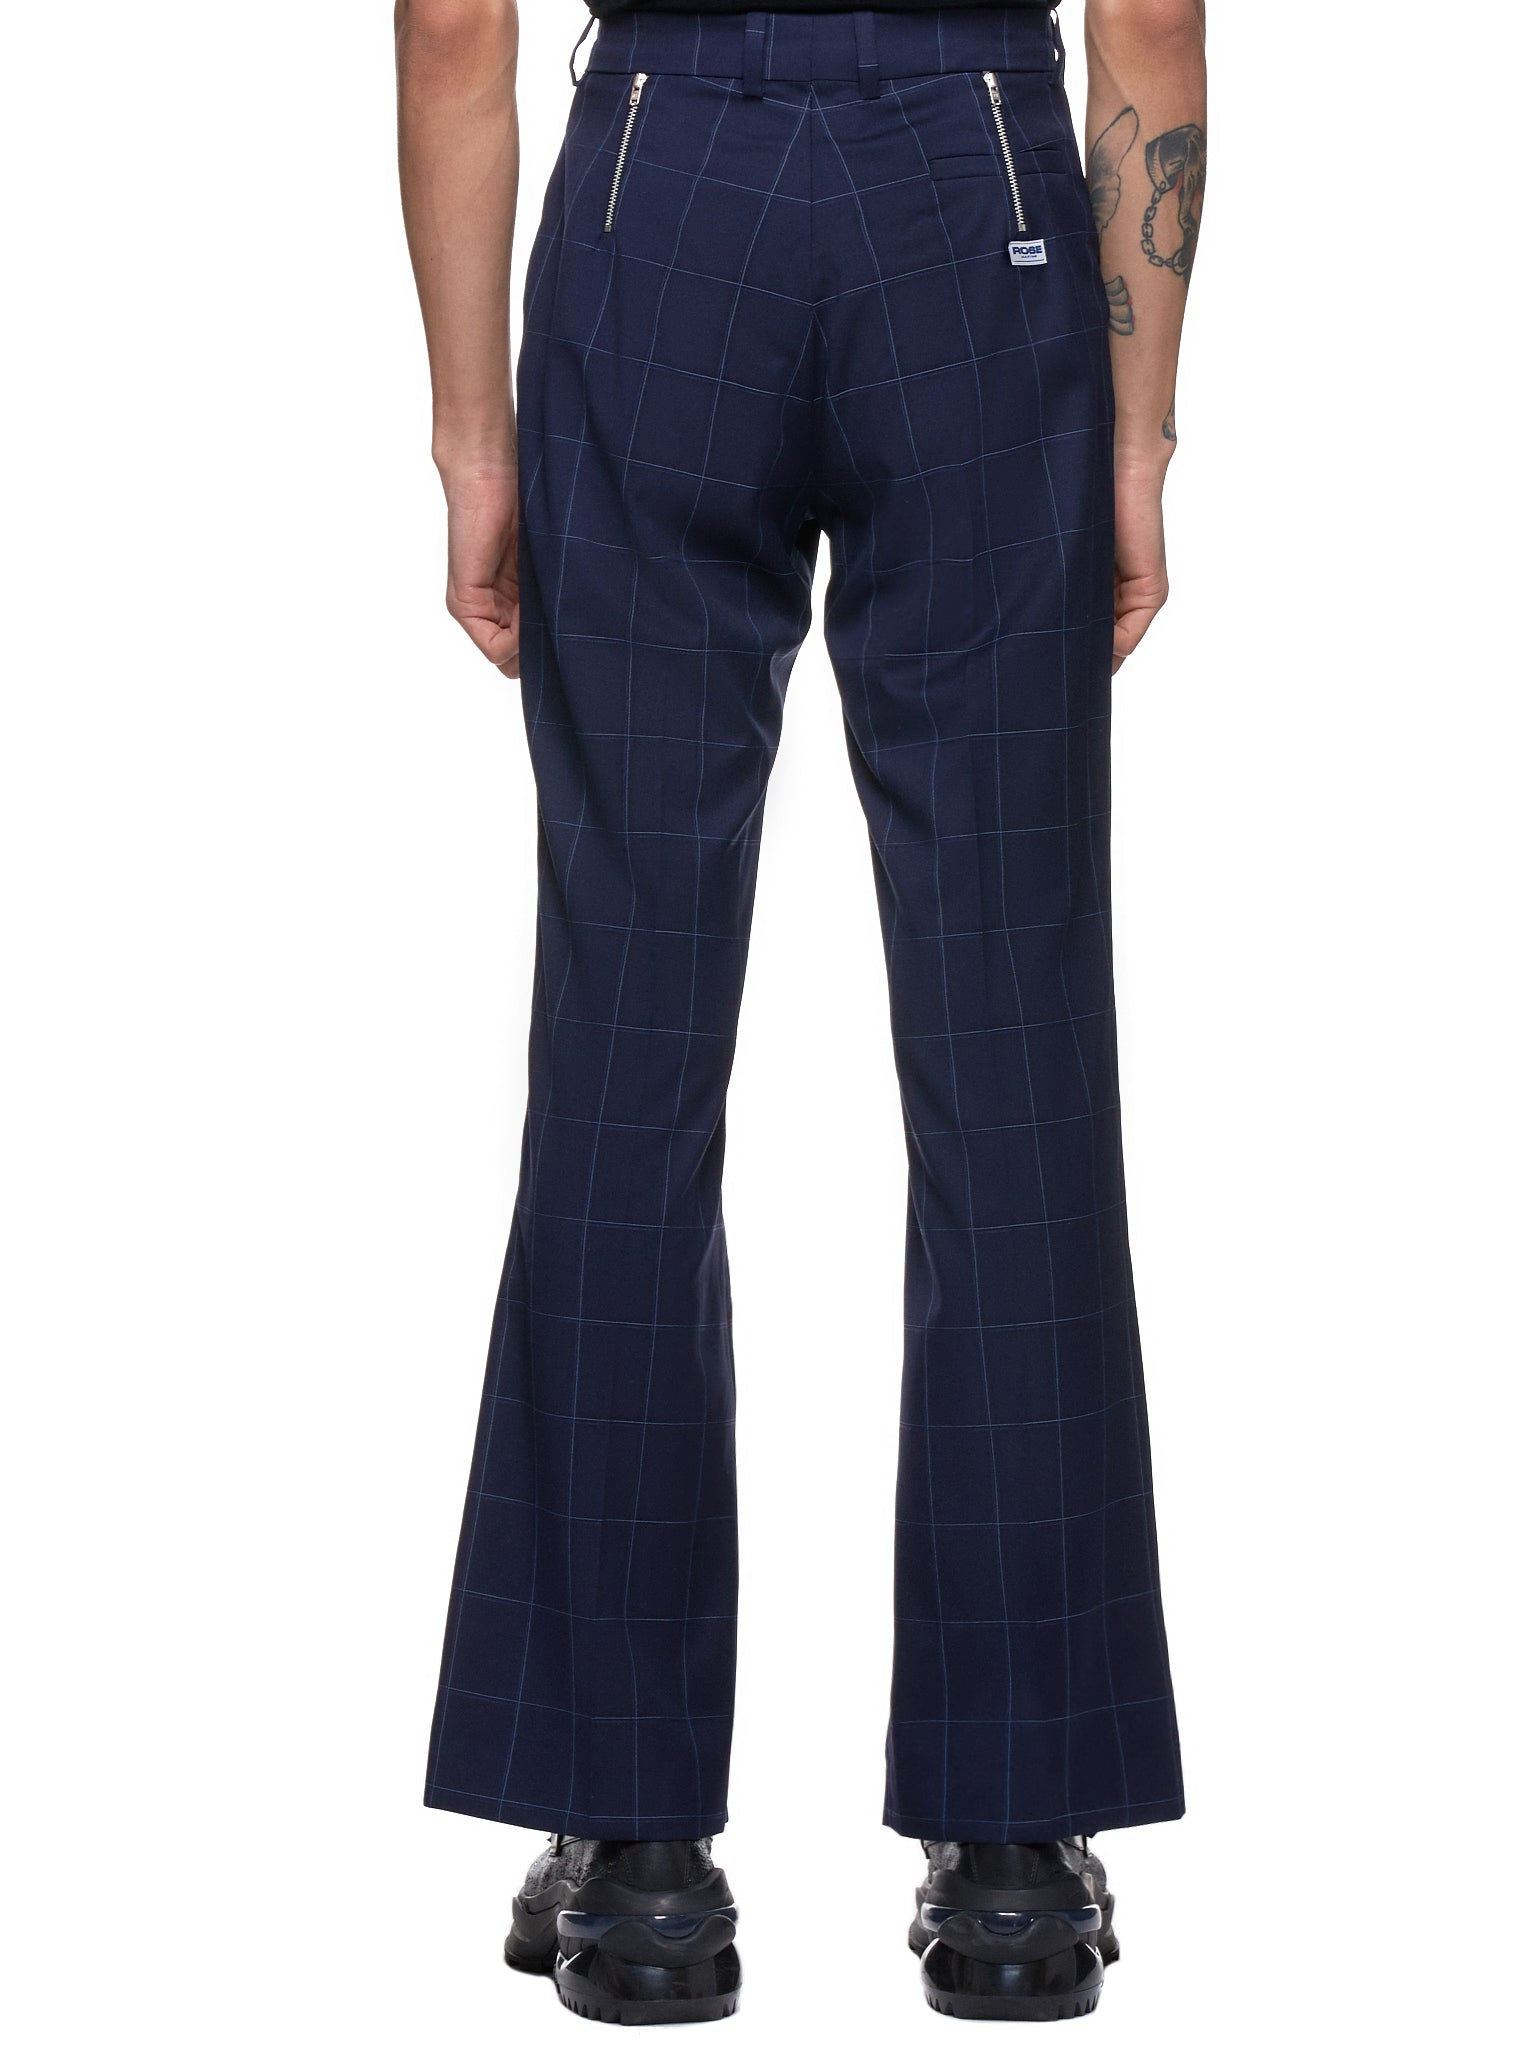 Martine Rose Trouser - Hlorenzo Bck